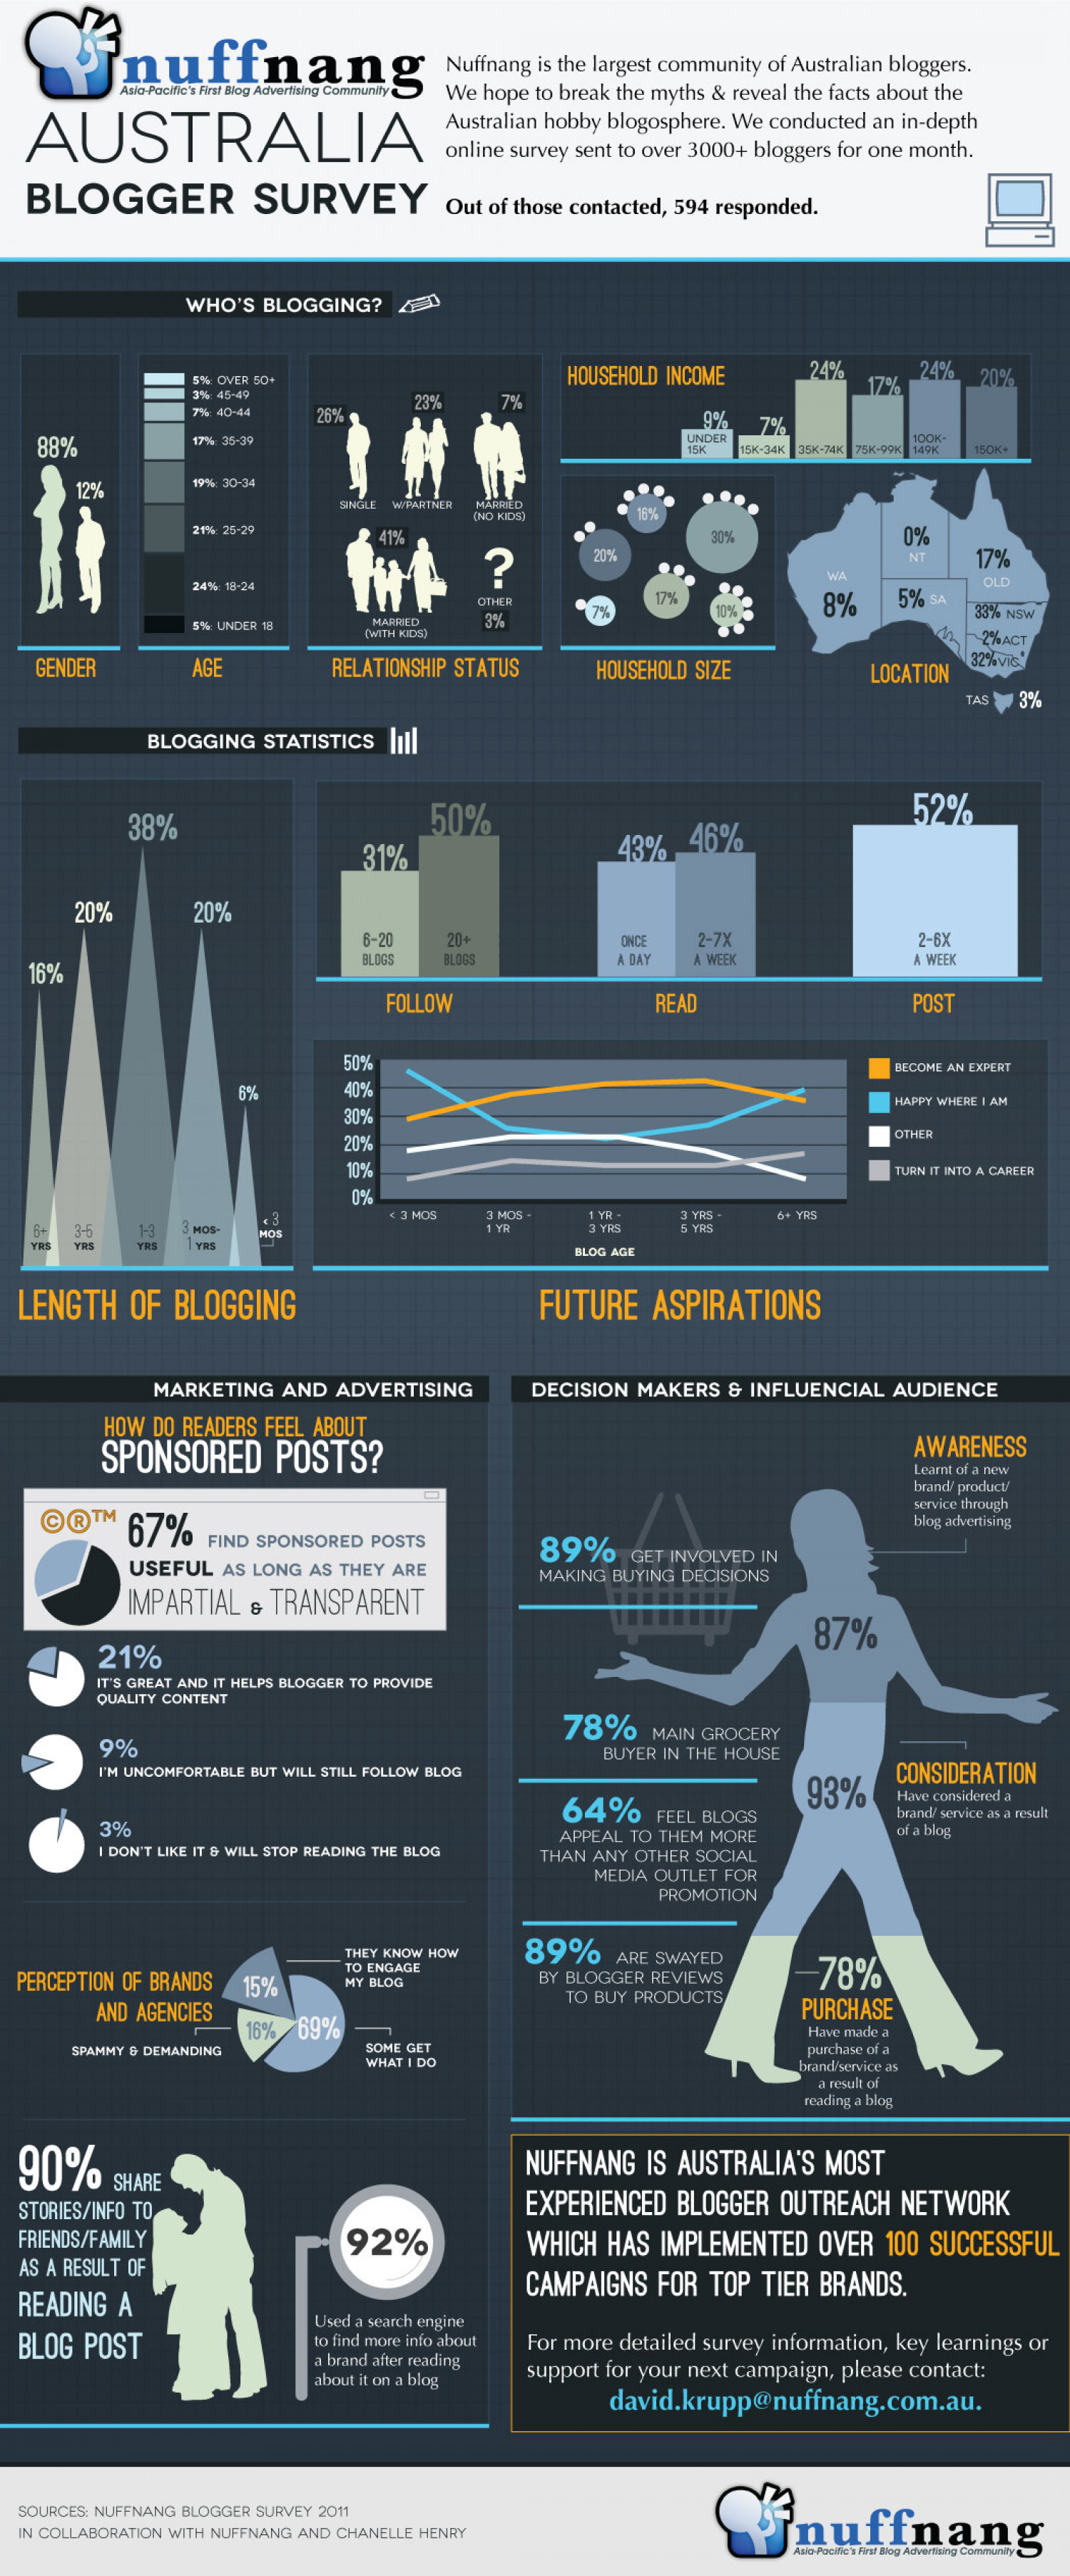 Nuffnang Survey - Who's Blogging? Infographic